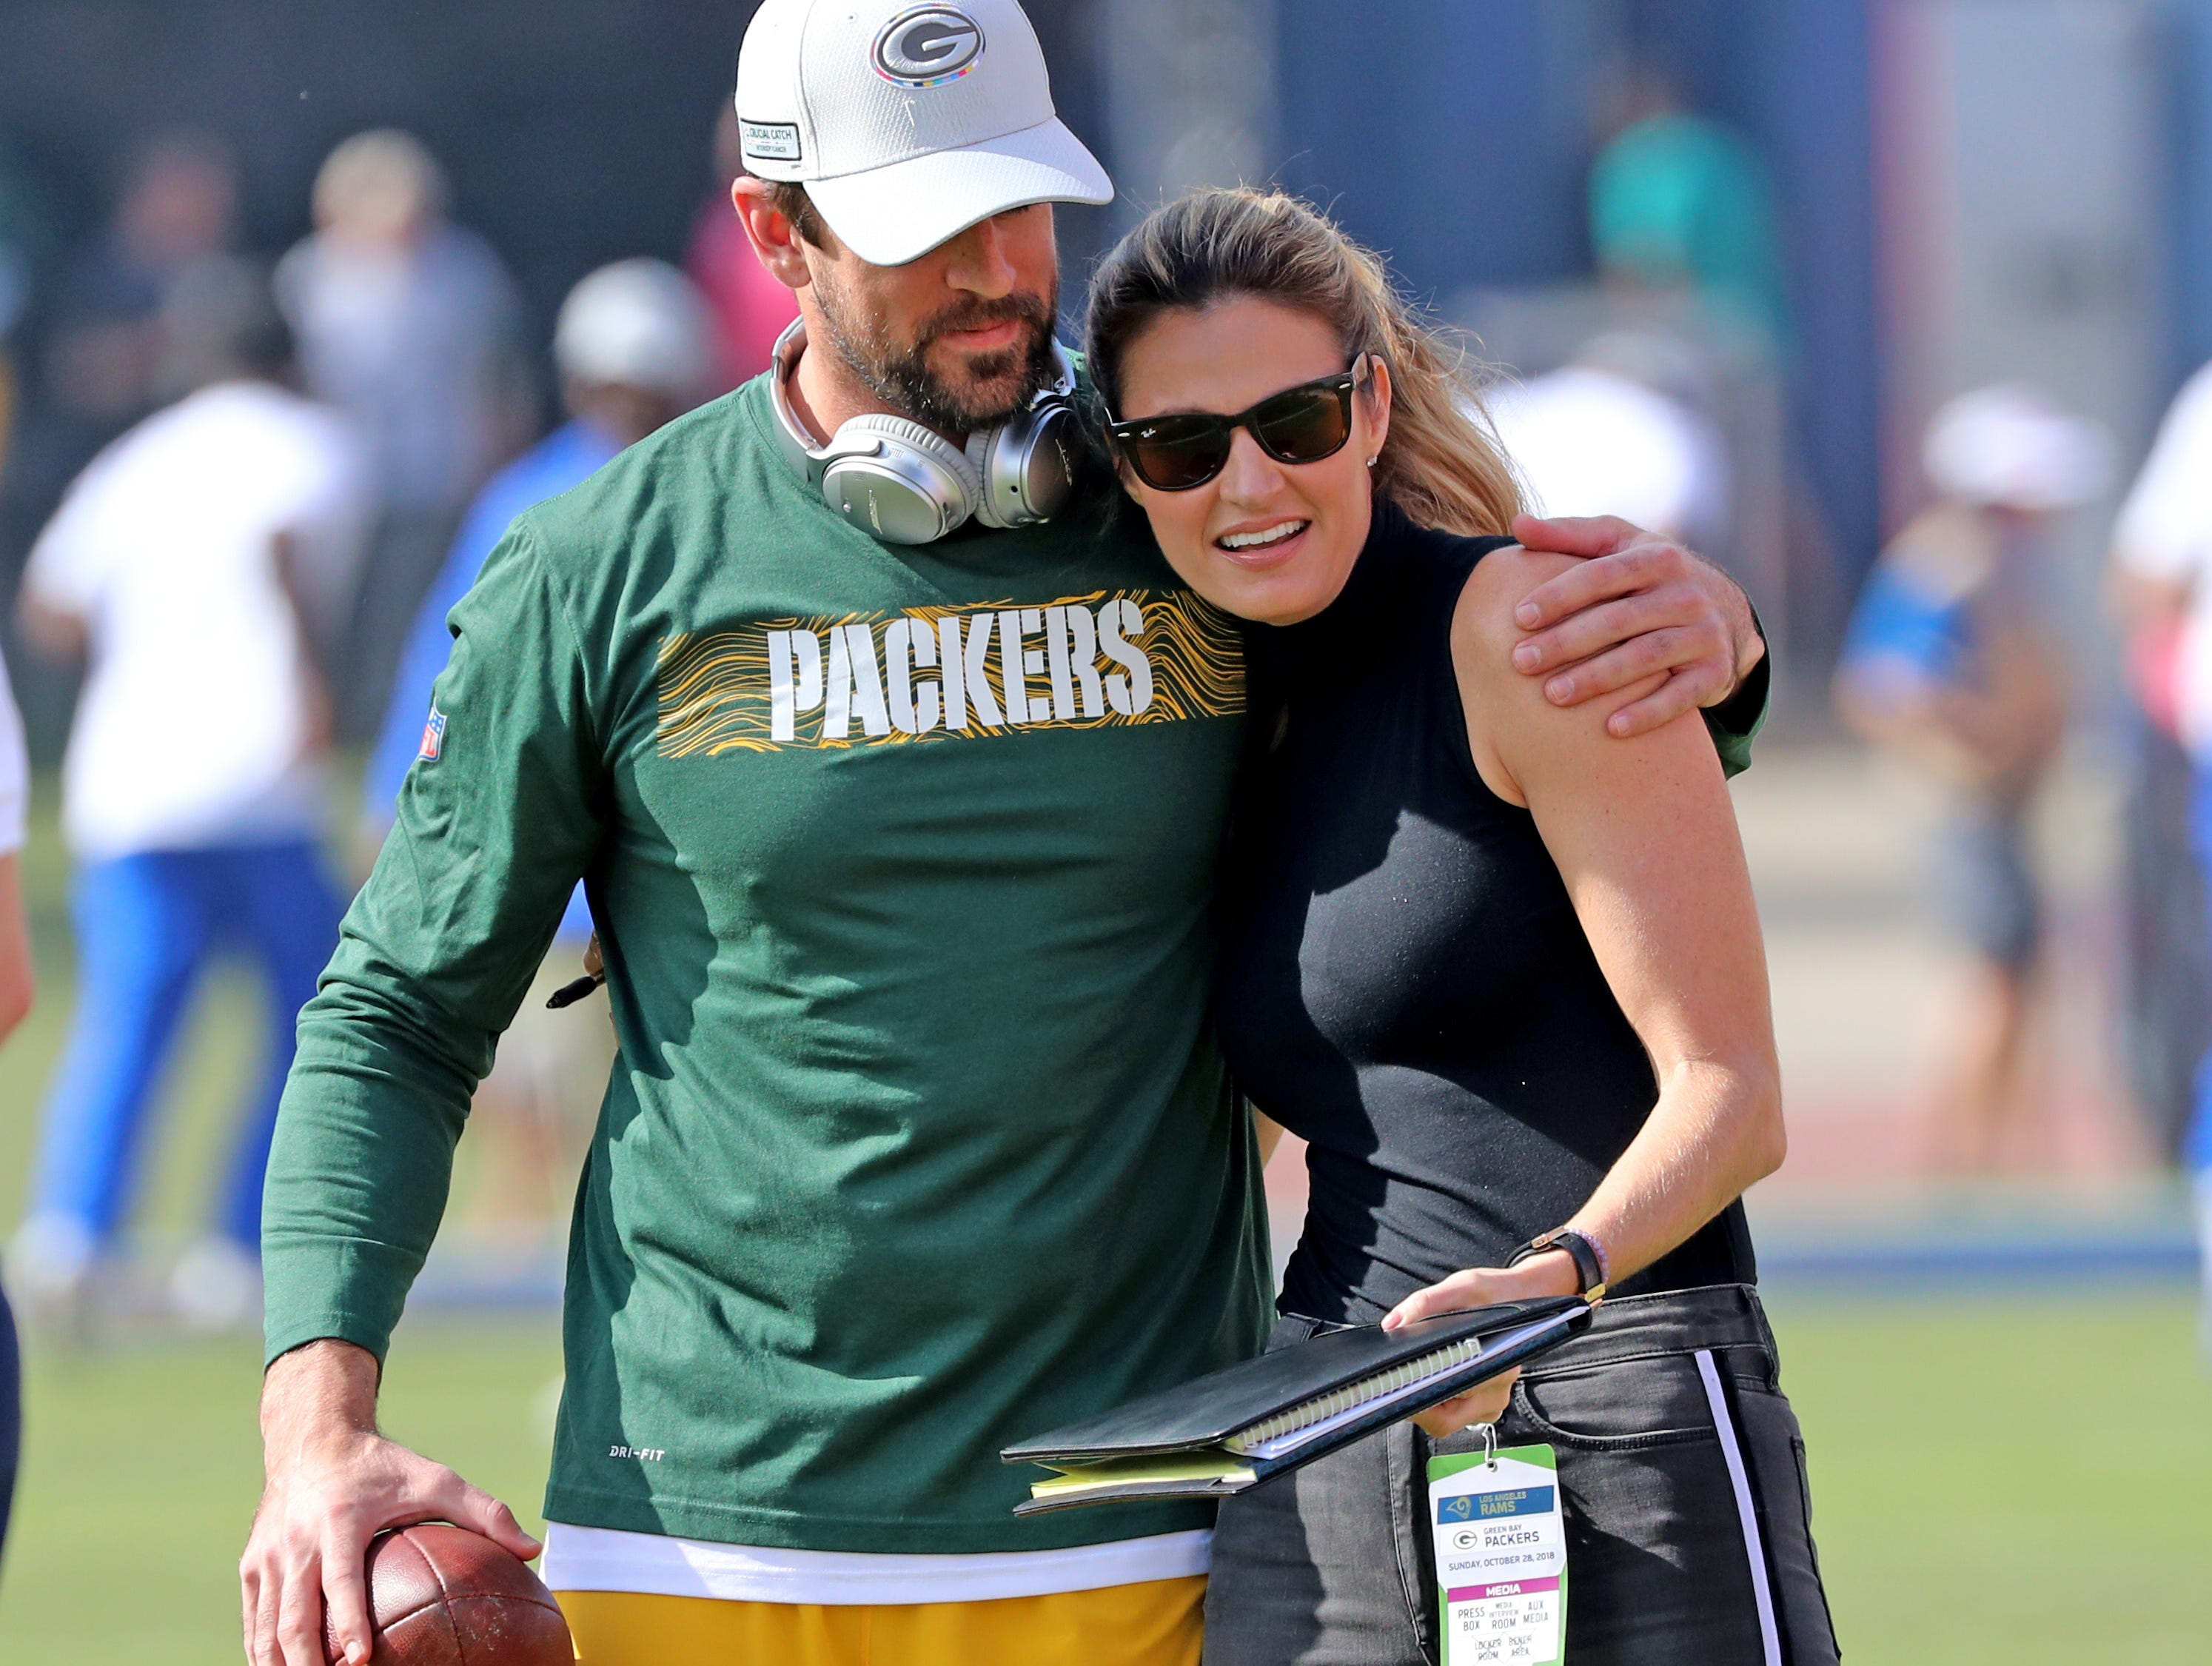 Green Bay Packers quarterback Aaron Rodgers (12) gets a hug from Erin Andrews during warmups before the game against the LA Rams Sunday, October 28, 2018 at the Memorial Coliseum in Los Angeles, Cal. Jim Matthews/USA TODAY NETWORK-Wis